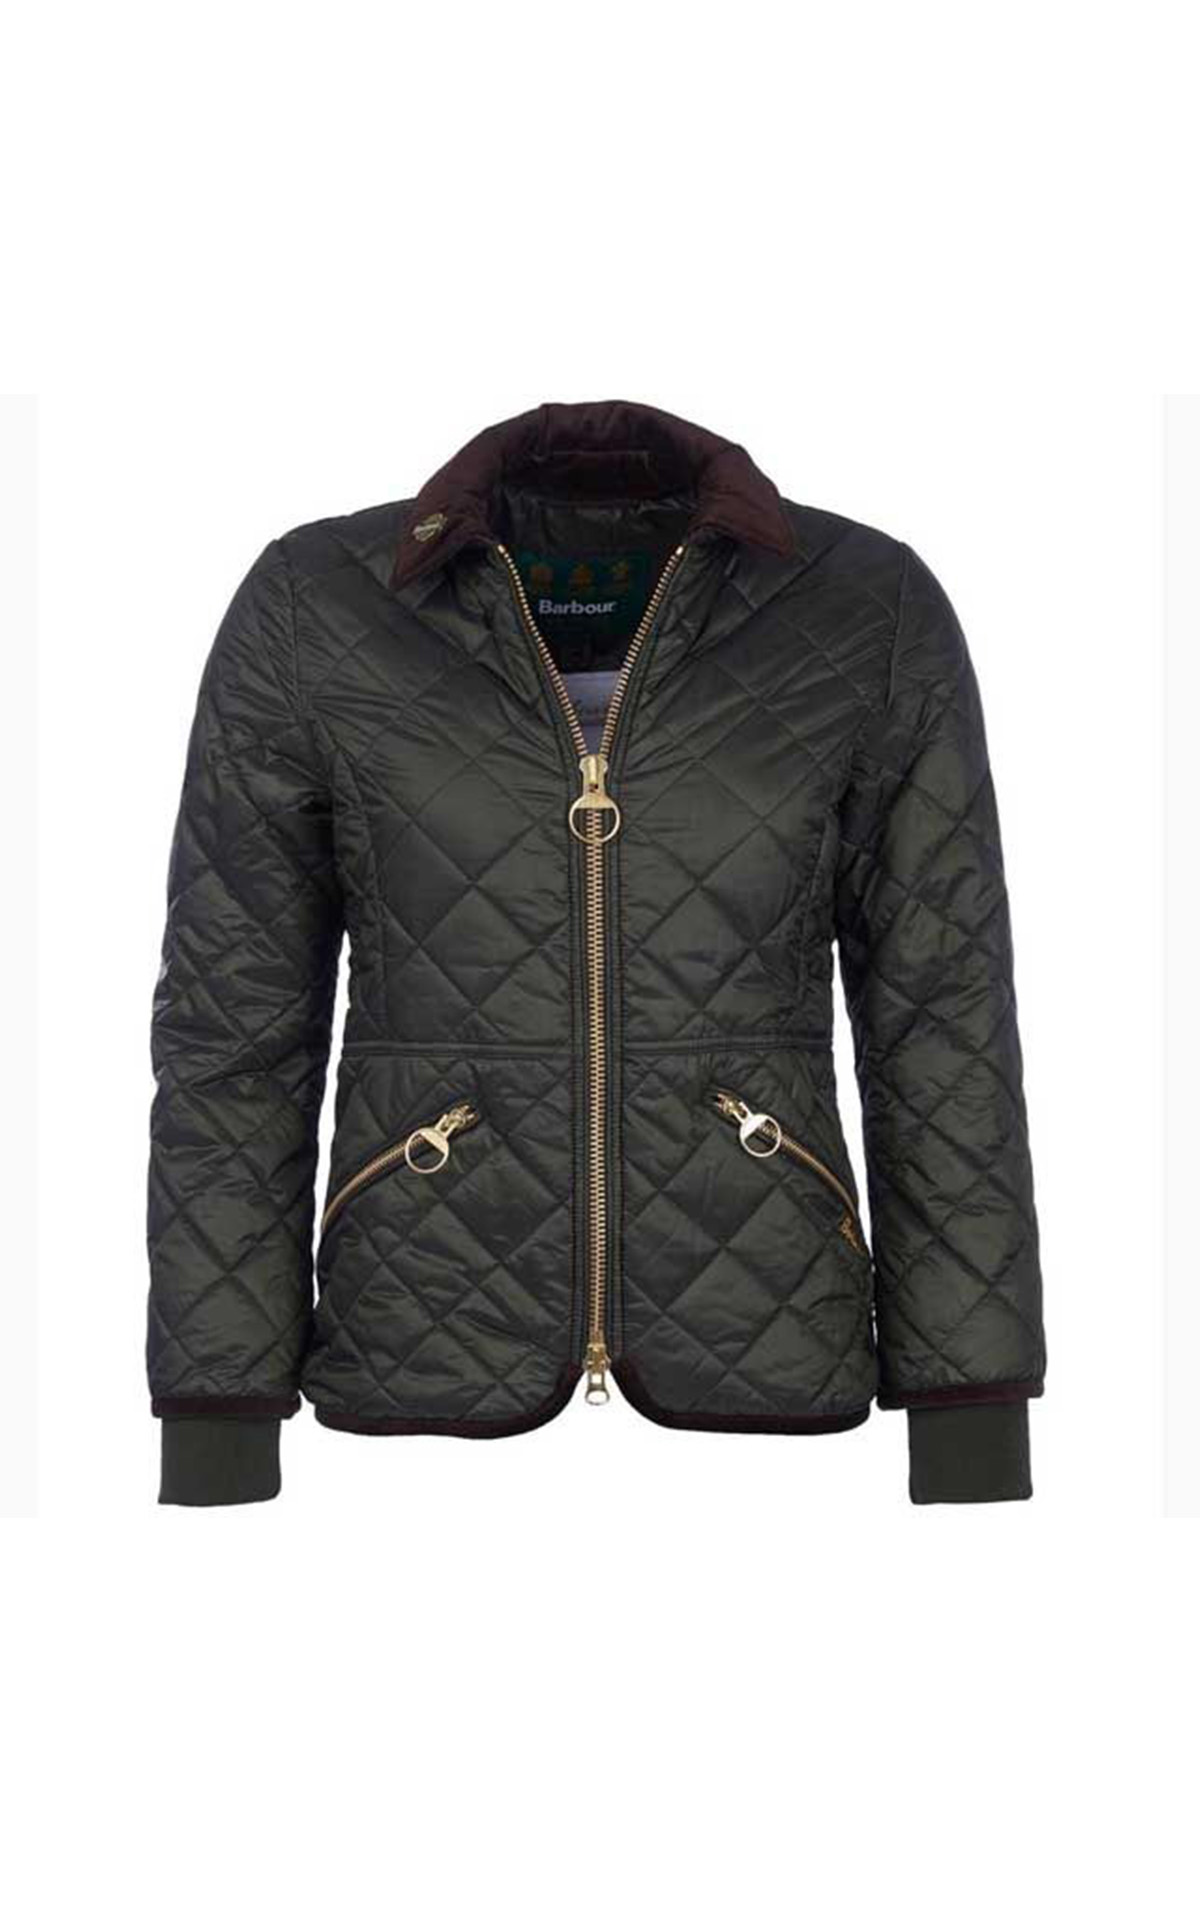 Barbour Icons liddesdale quilted jacket from Bicester Village